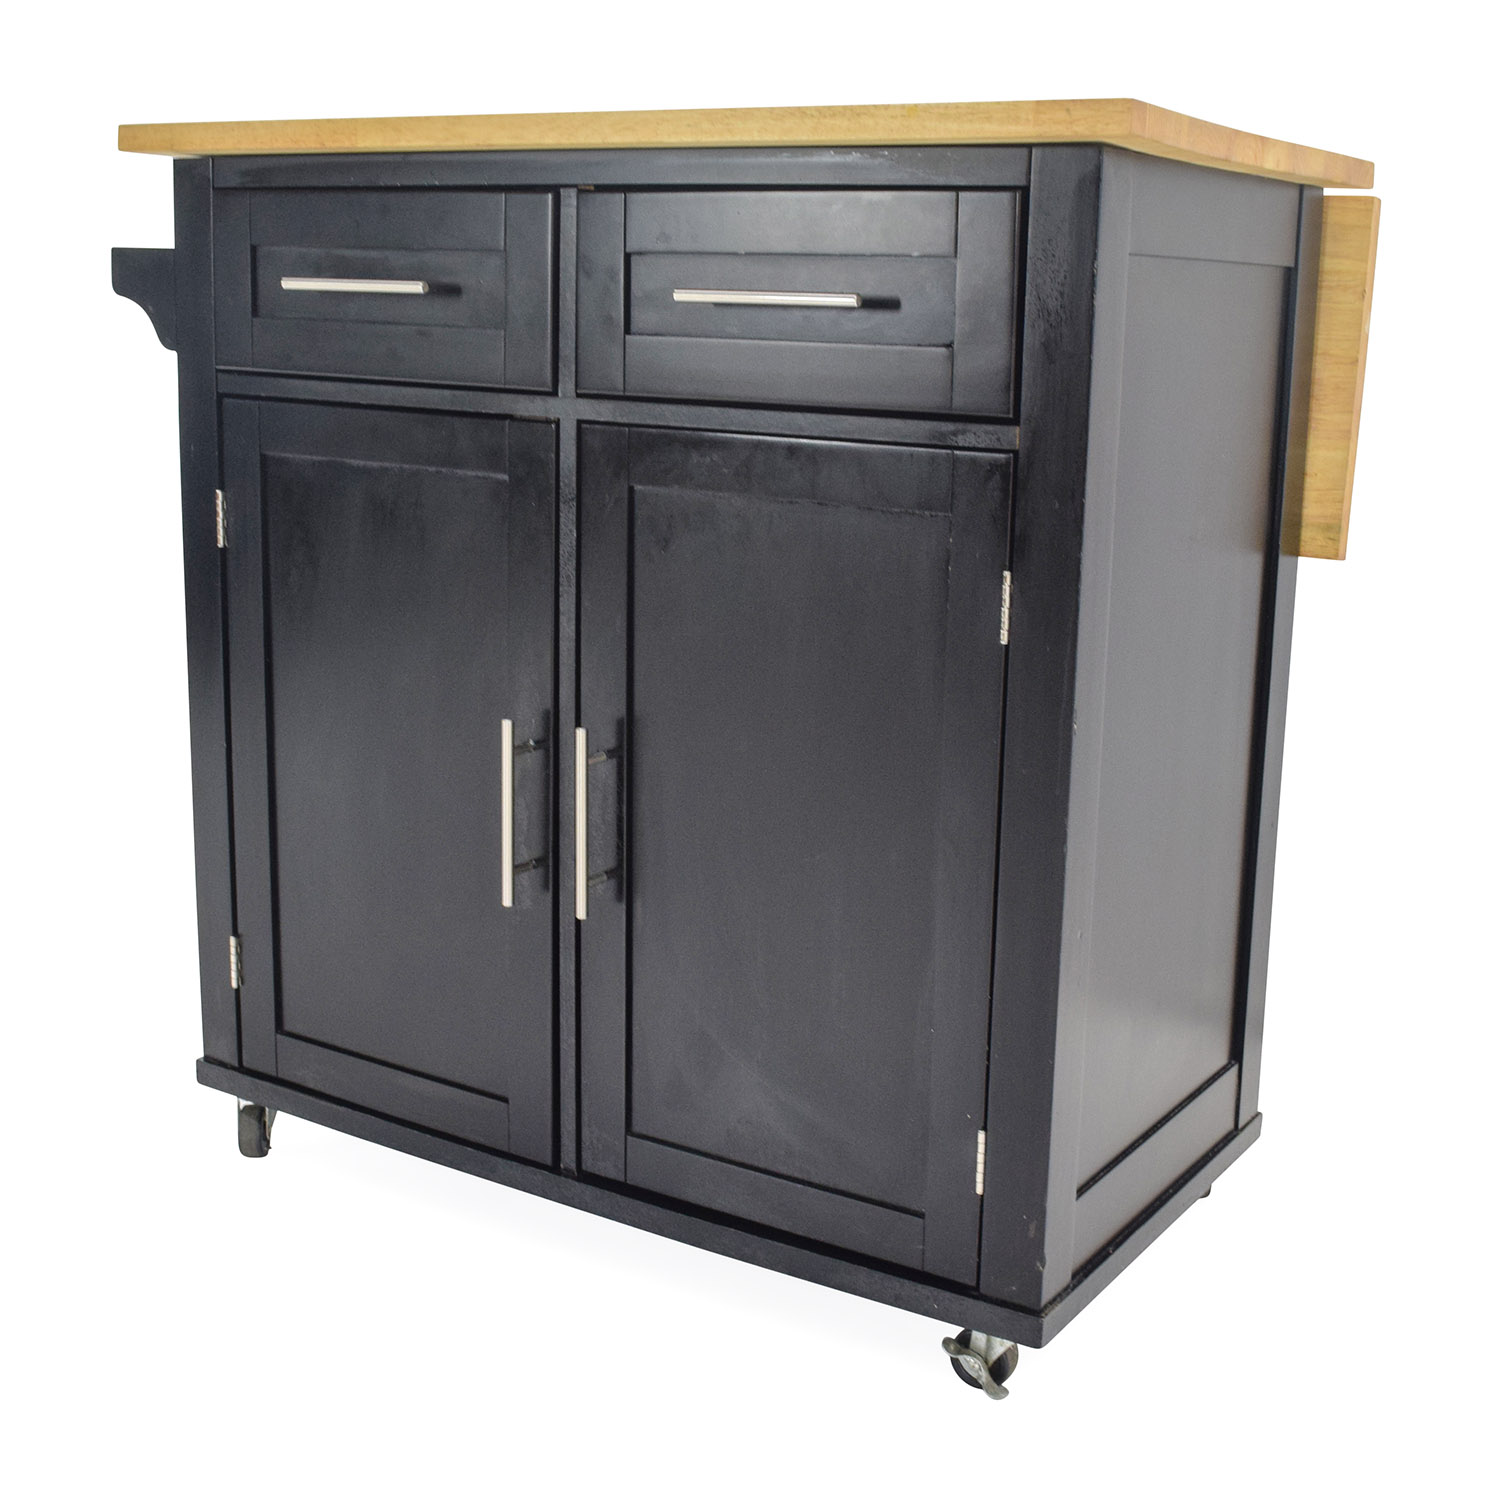 54 Off Crate And Barrel Crate And Barrel Kitchen Island